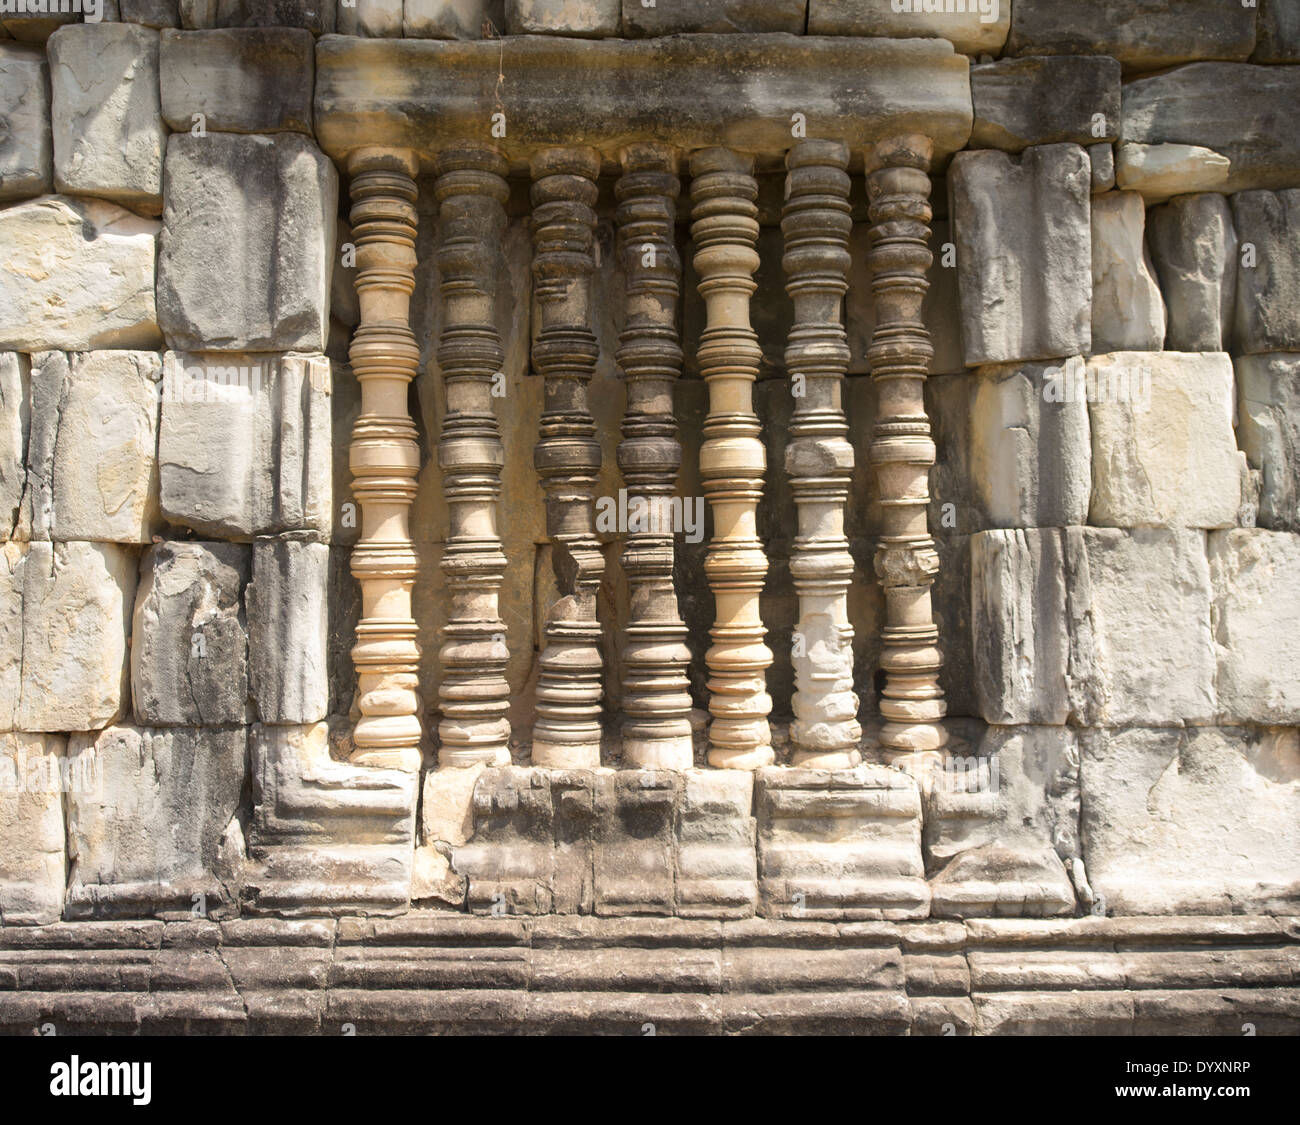 Turned stone pillars at Bakong Temple ( Roluos Group ) Siem Reap, Cambodia - Stock Image